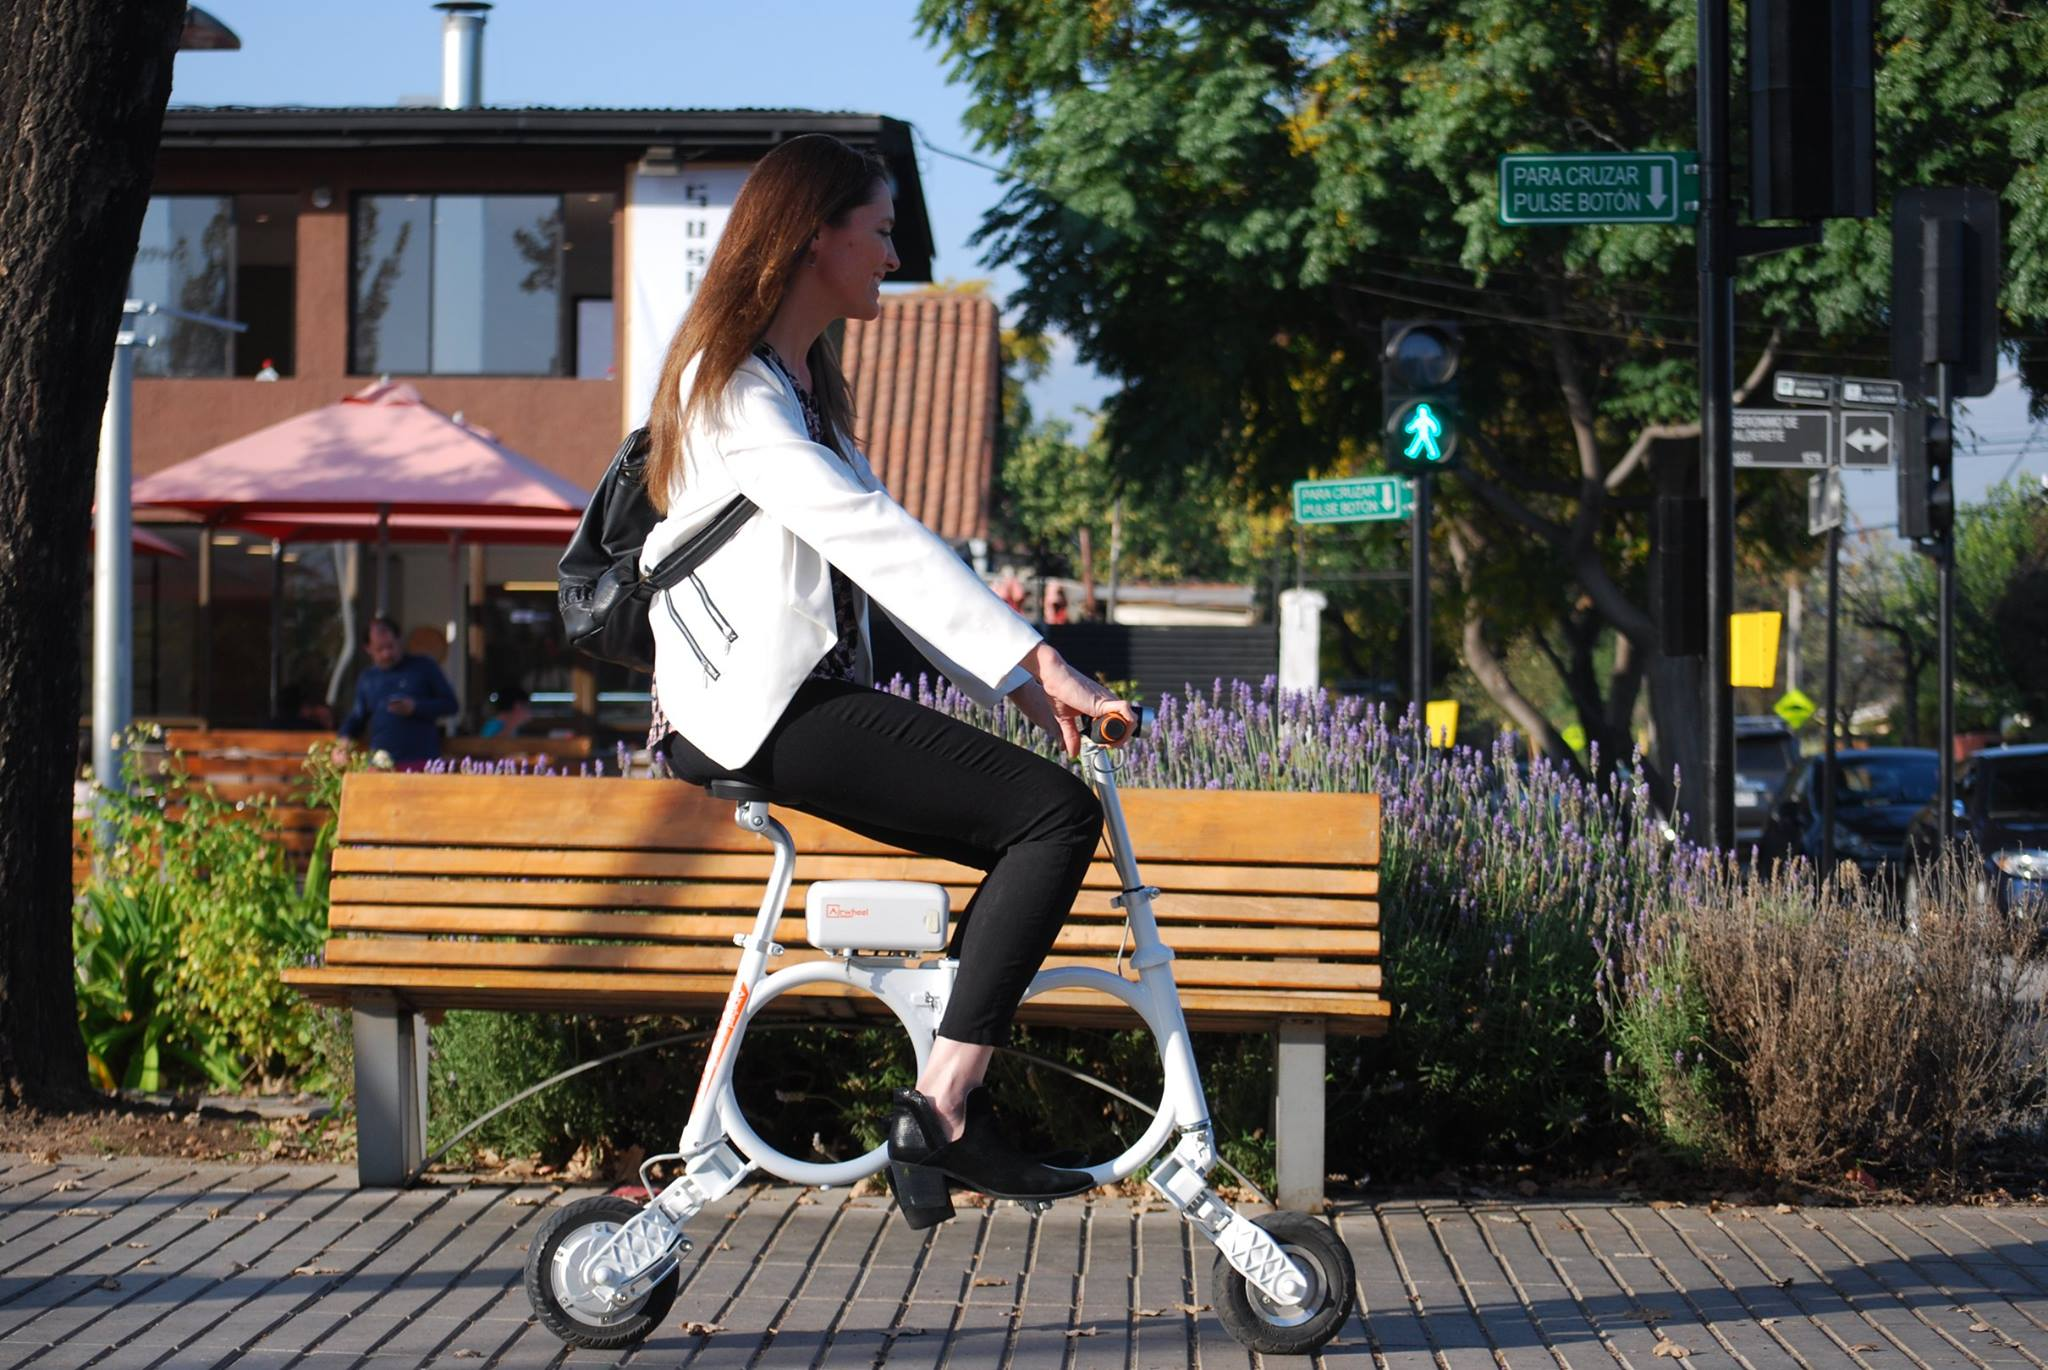 Airwheel E3 backpack mini ebike